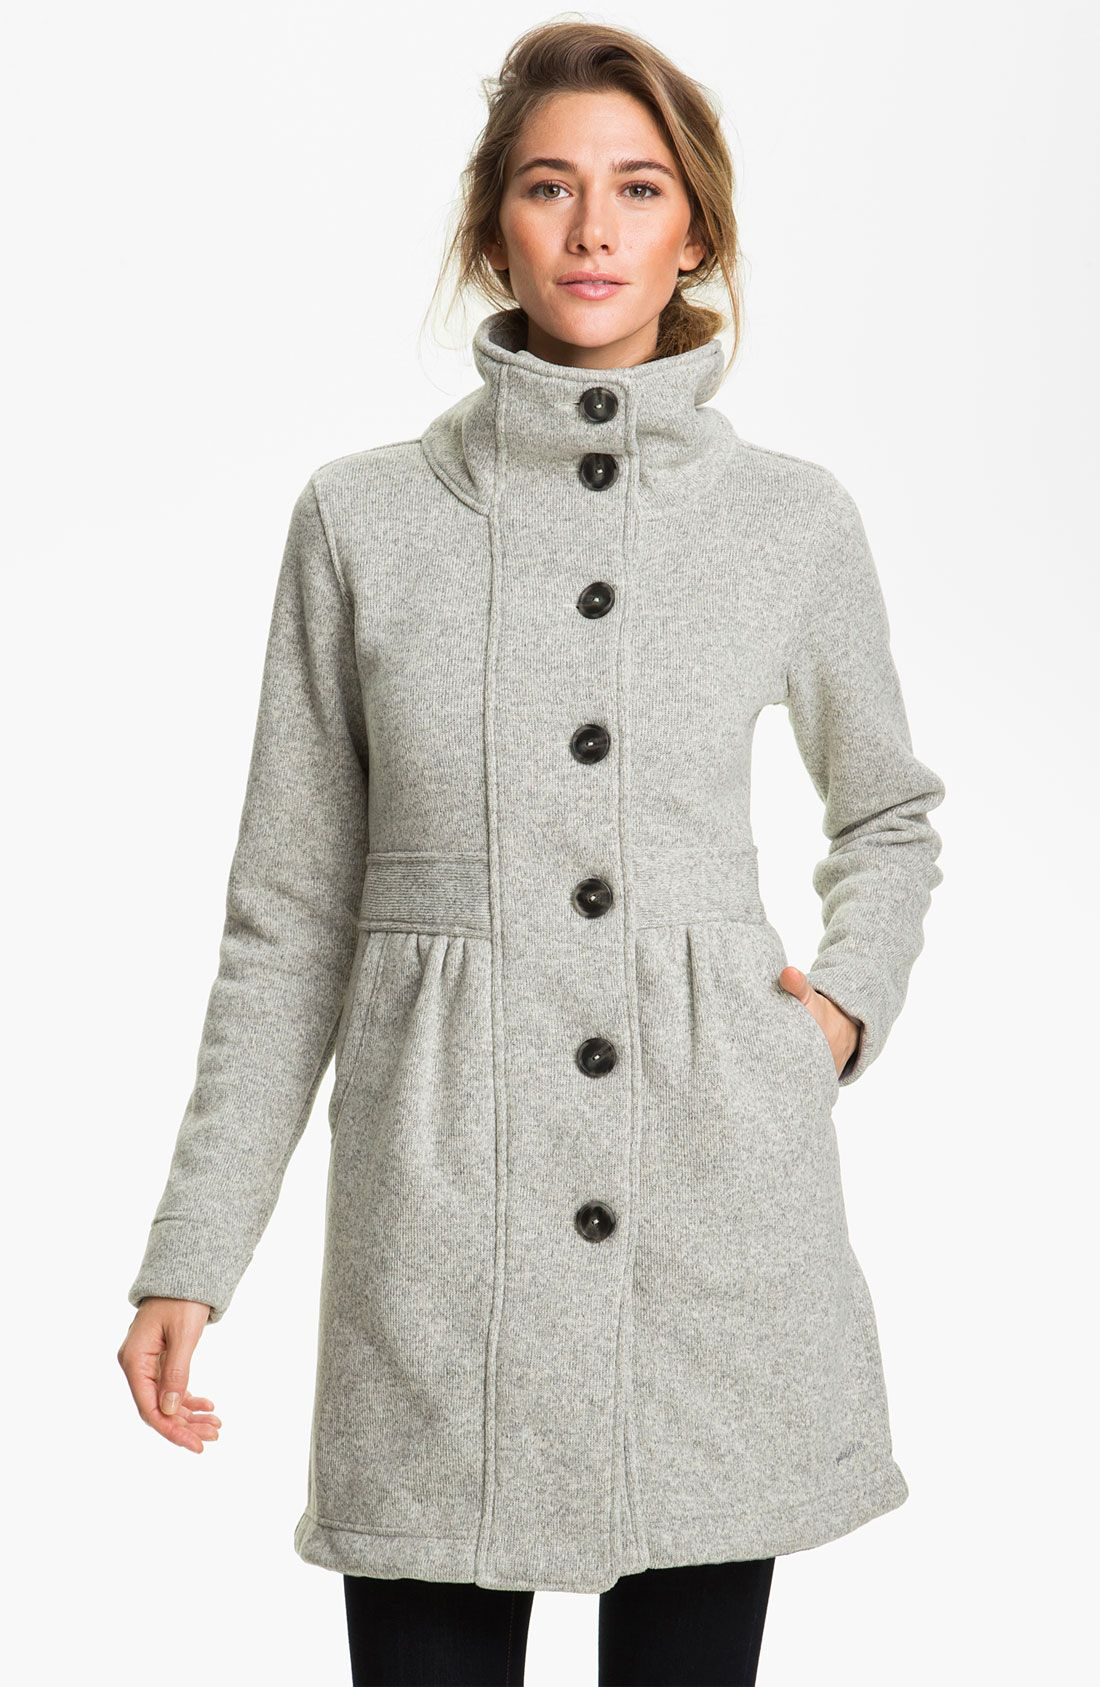 Patagonia 'Better Sweater' Coat | My Style | Pinterest | Patagonia ...